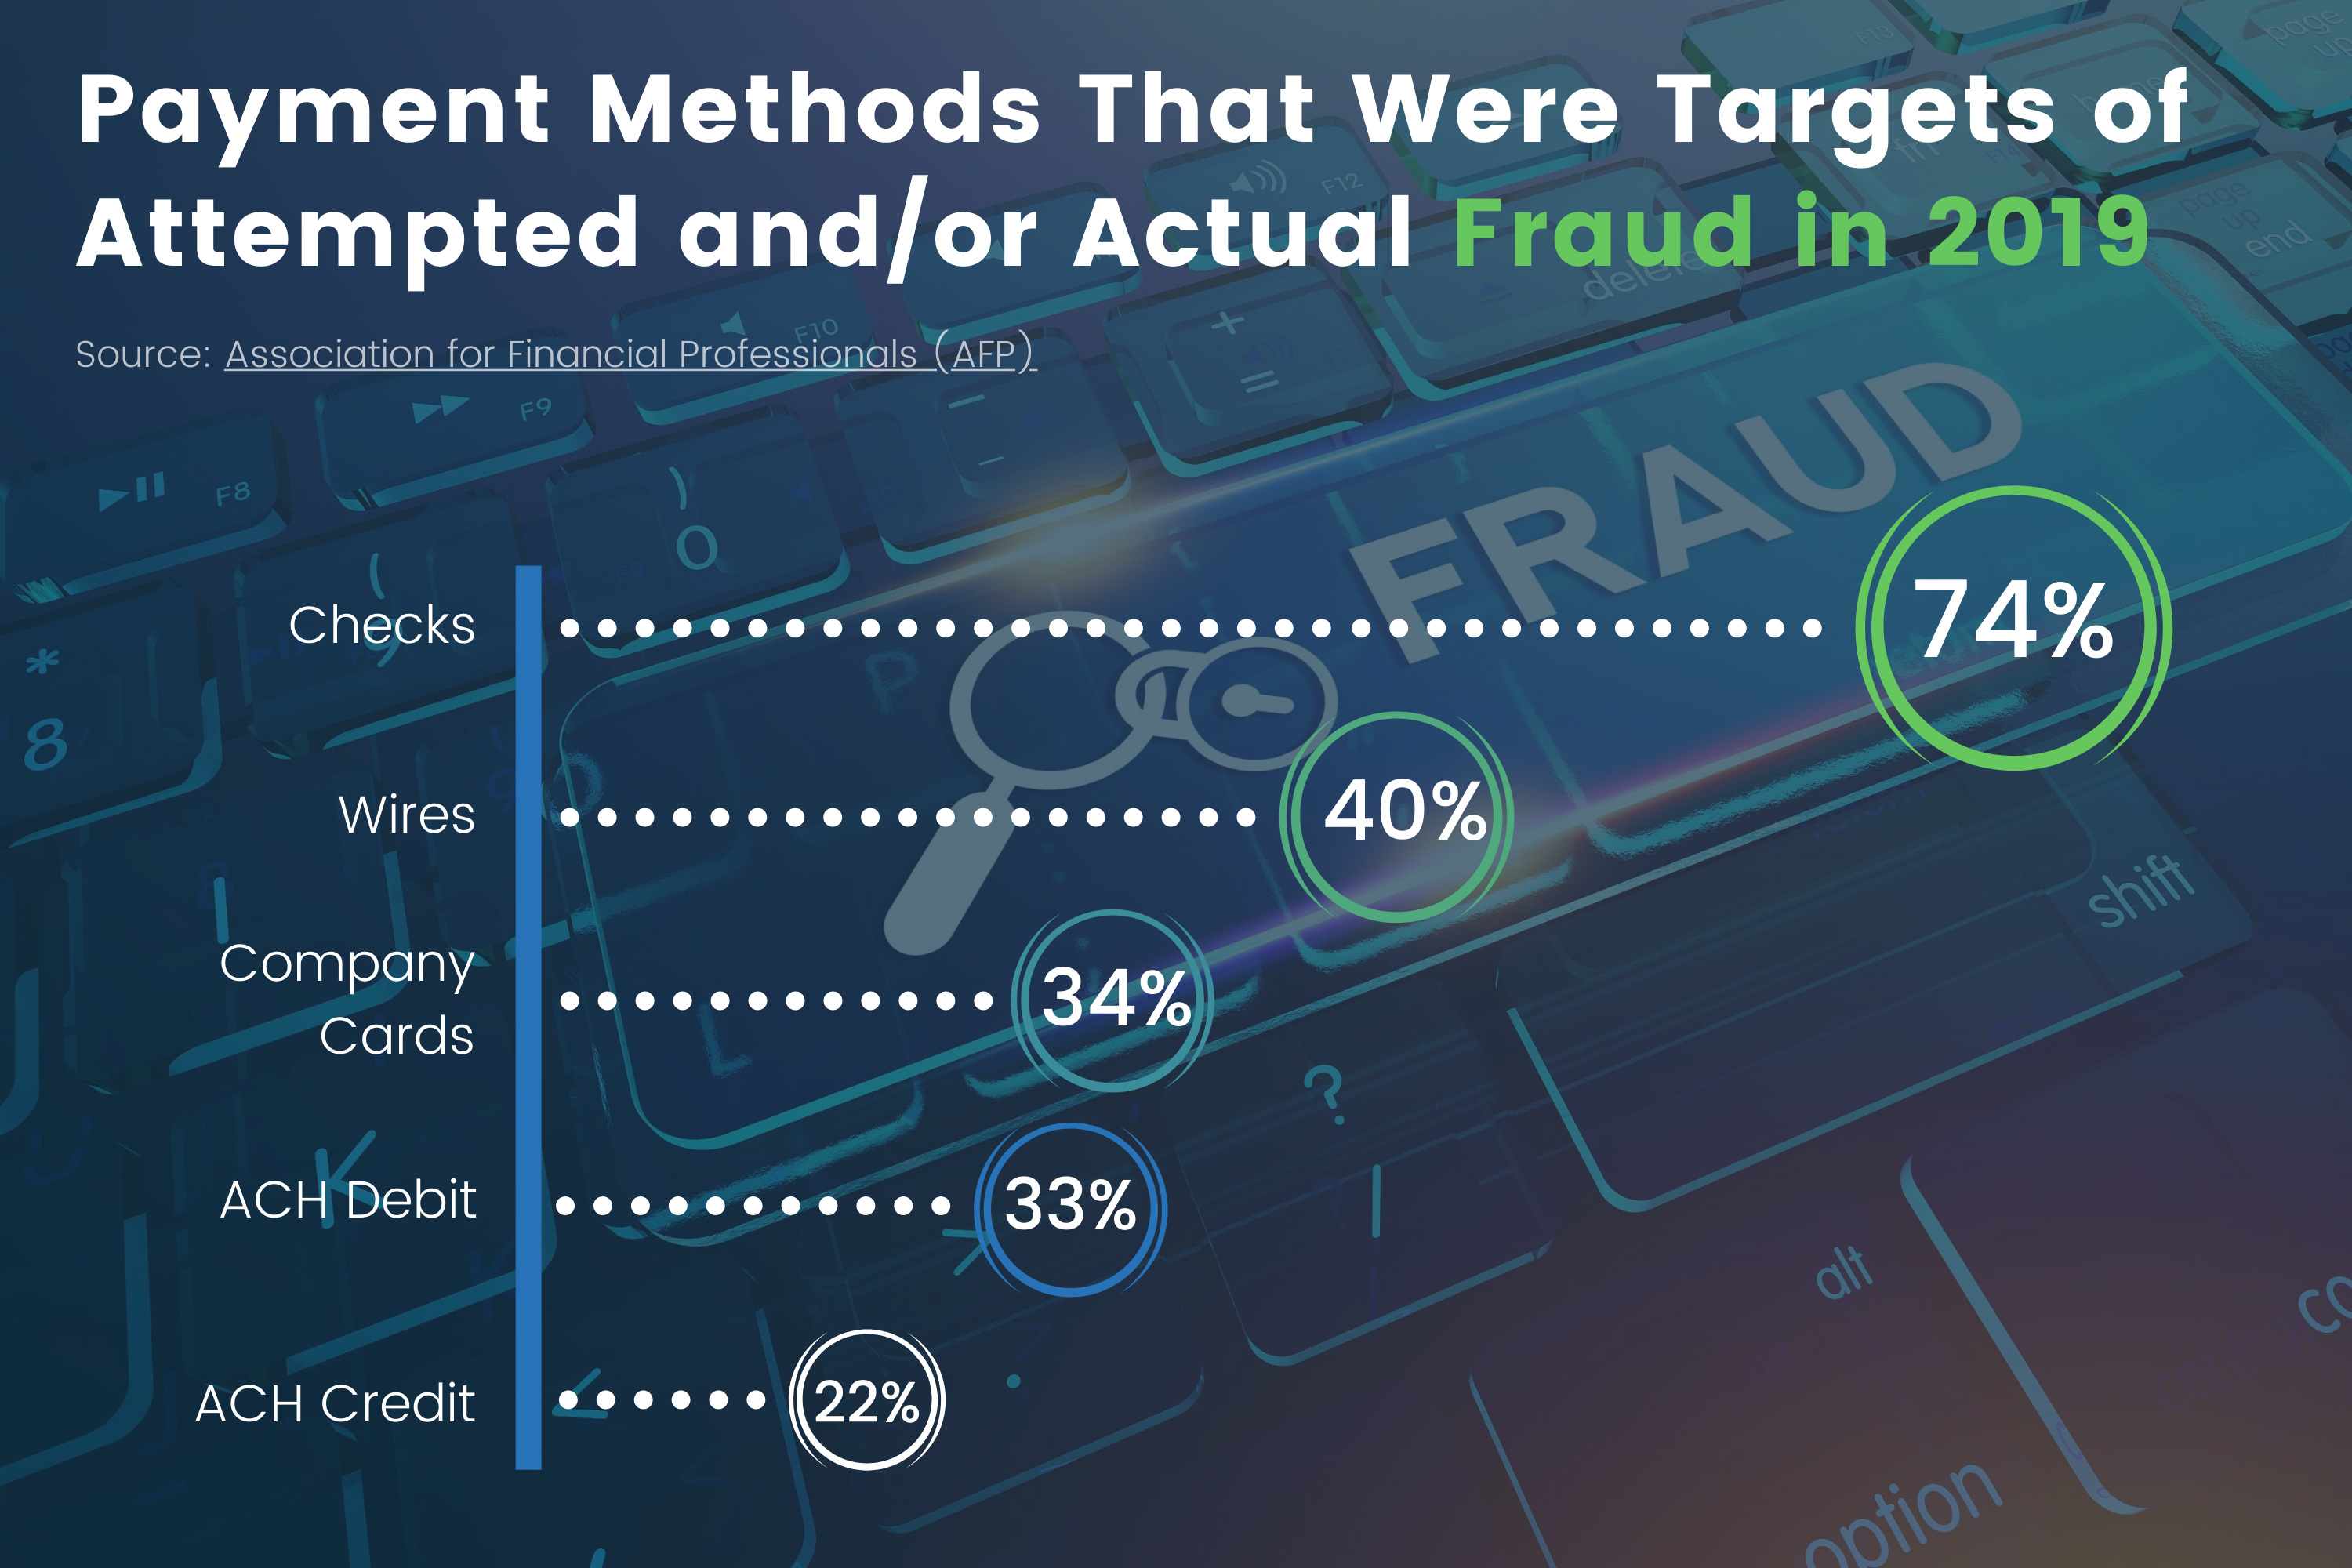 payment_methods_that_were_targets_of_attempted_and_or_actual_fraud_in_2019_infographic_source_AFP